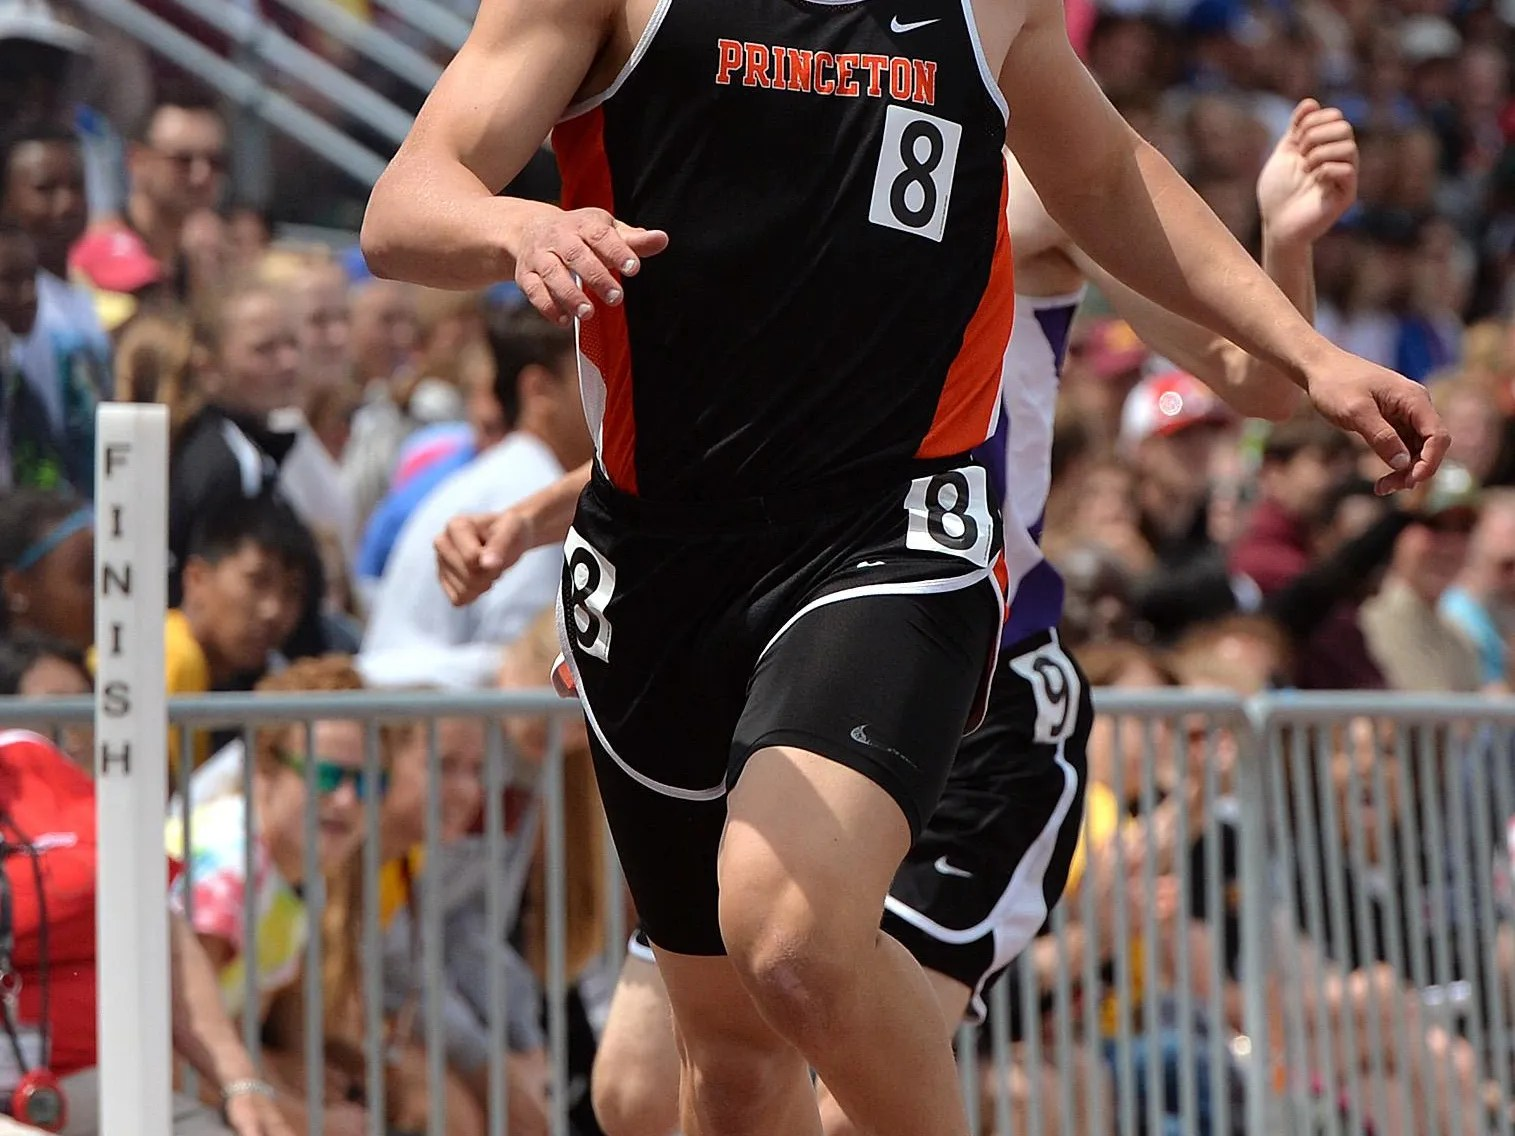 Princeton senior Tanner Bowers competes in the 200-meter dash in the Class  2A state